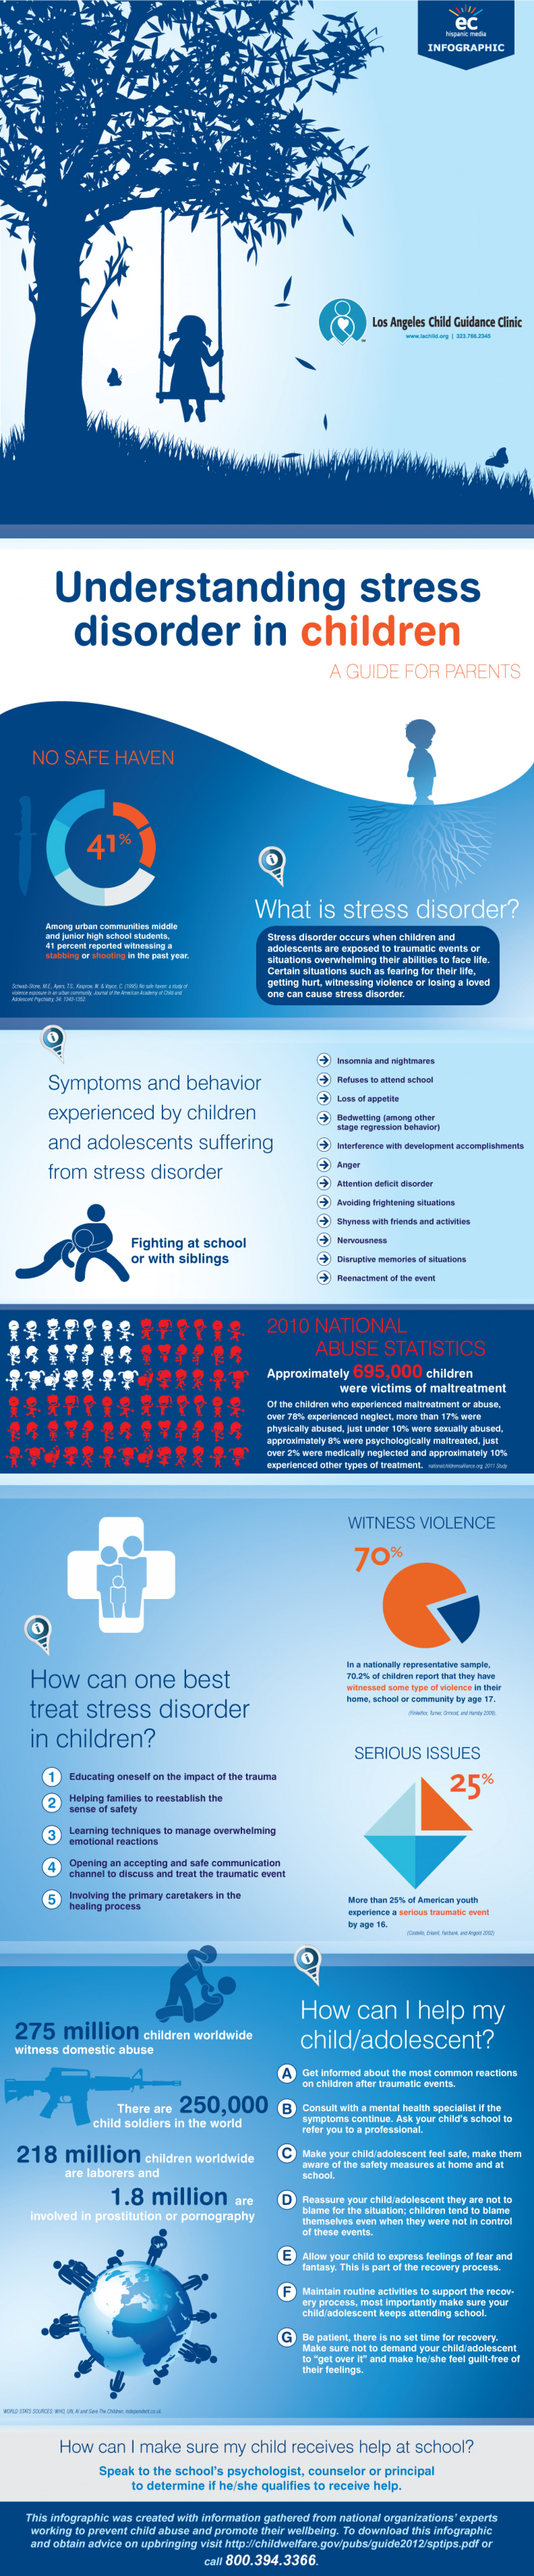 Child Trauma & Parent Guide Infographic